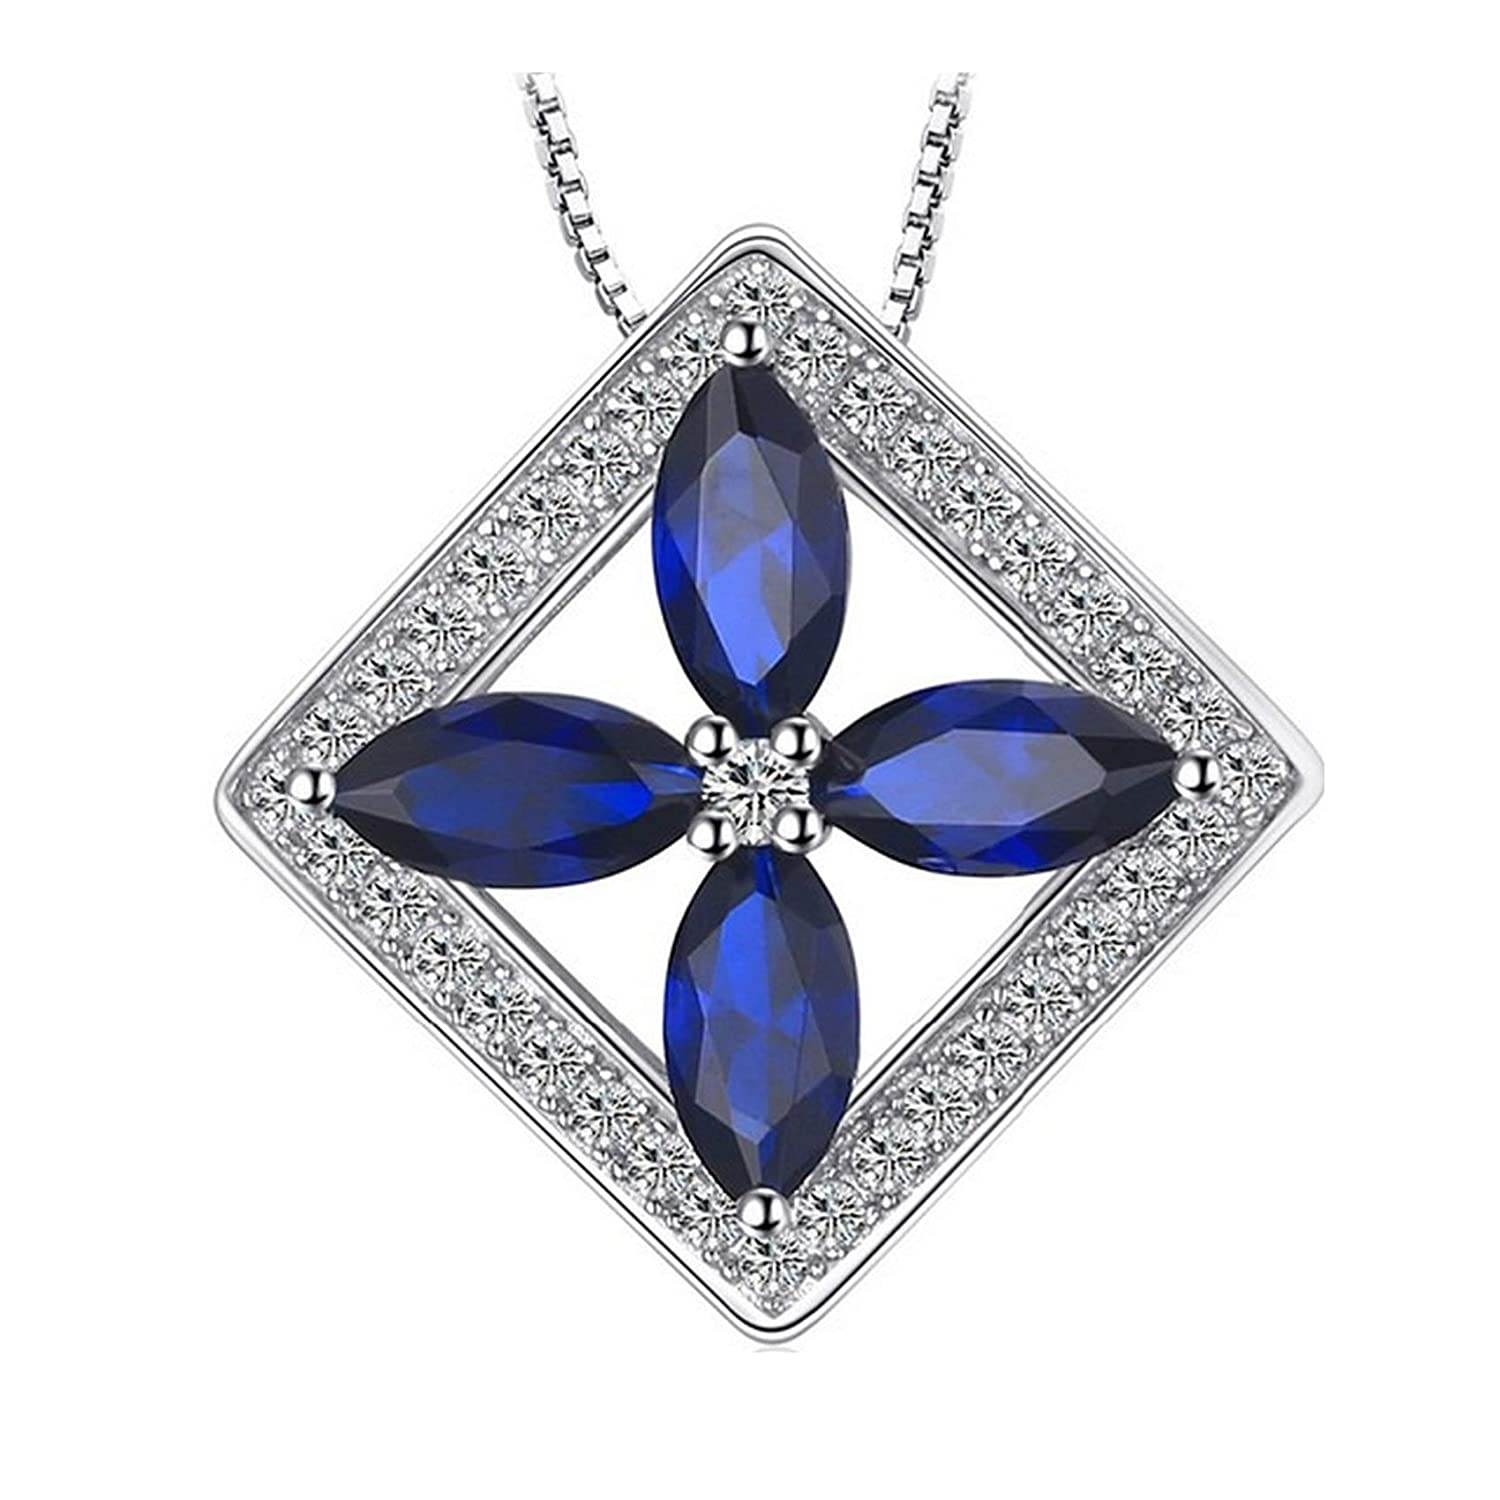 Womens Necklaces by CS-DB Classic Flower 4.8ct Gift Blue Spinel Charm Jewelry Girls Silver Pendants